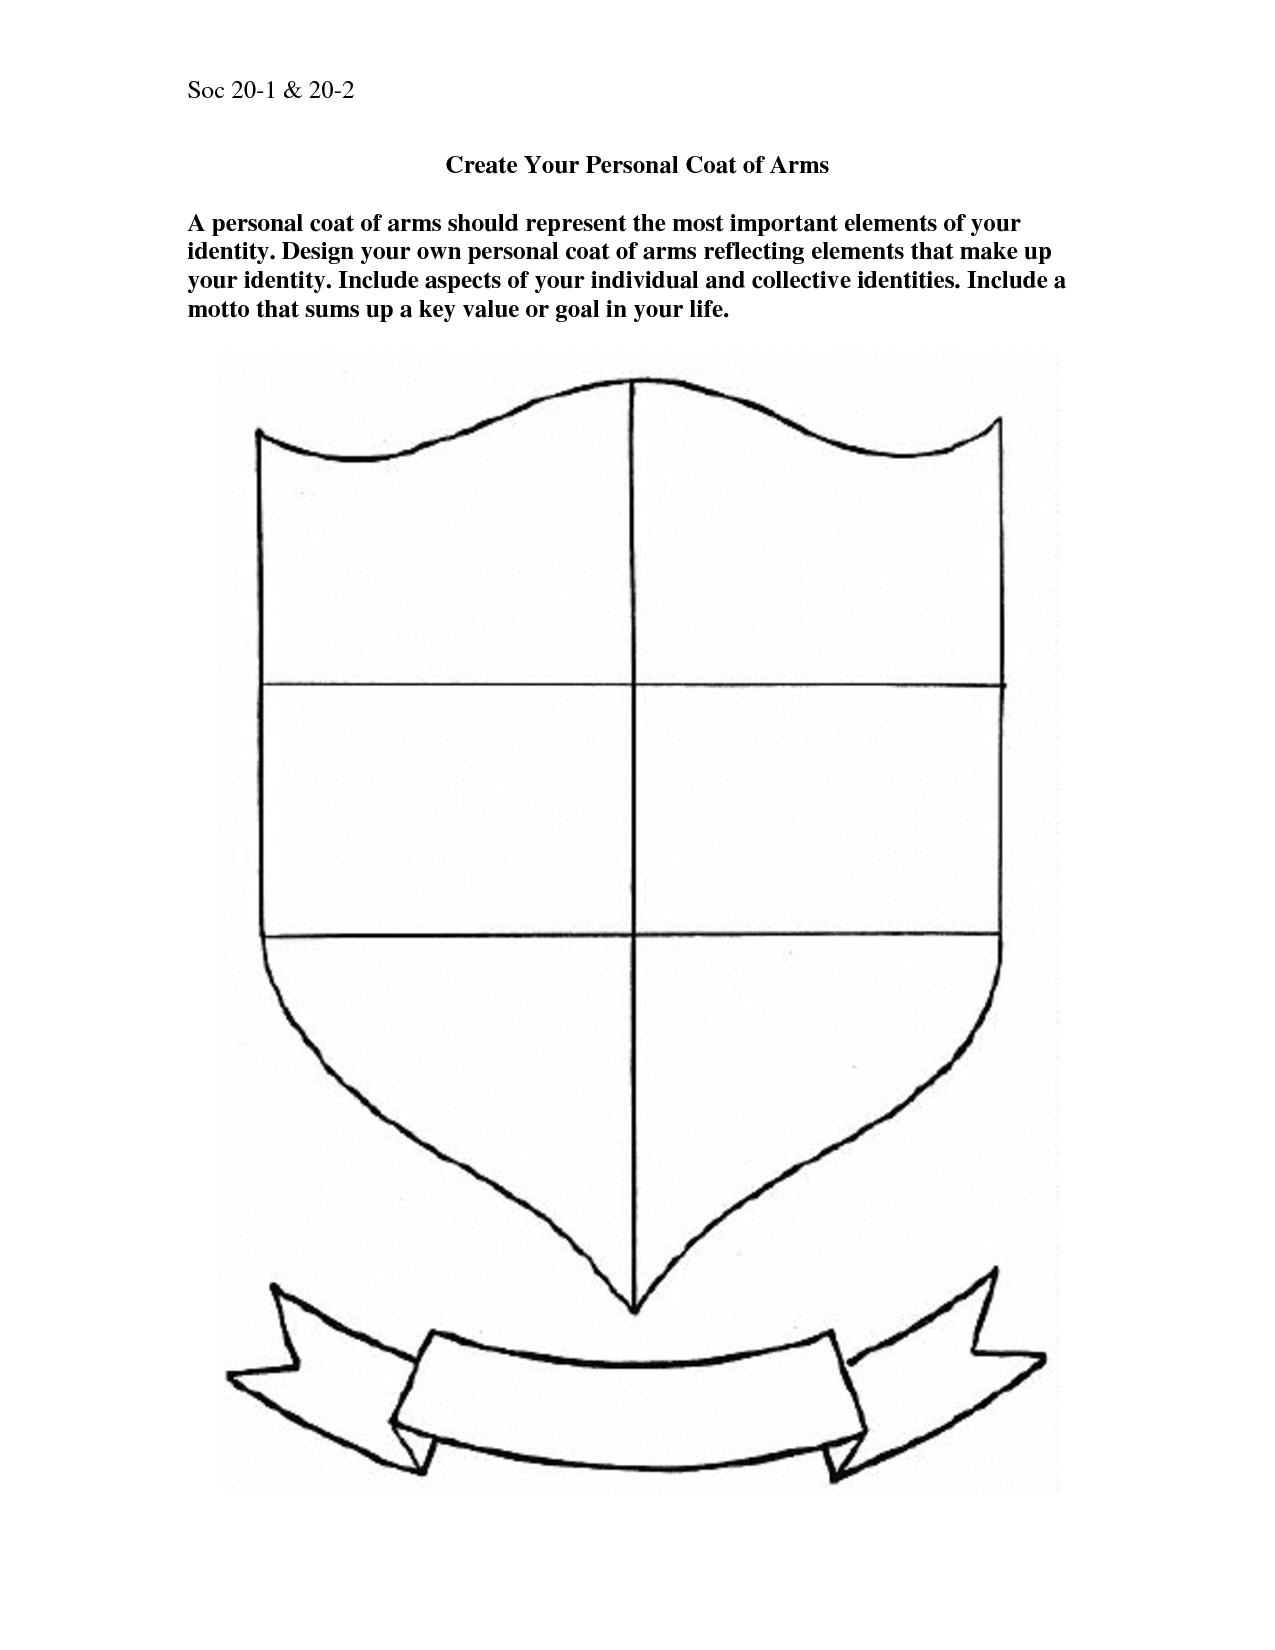 Code Of Arms Template Invitation Templates Study History Templates Invitation Template